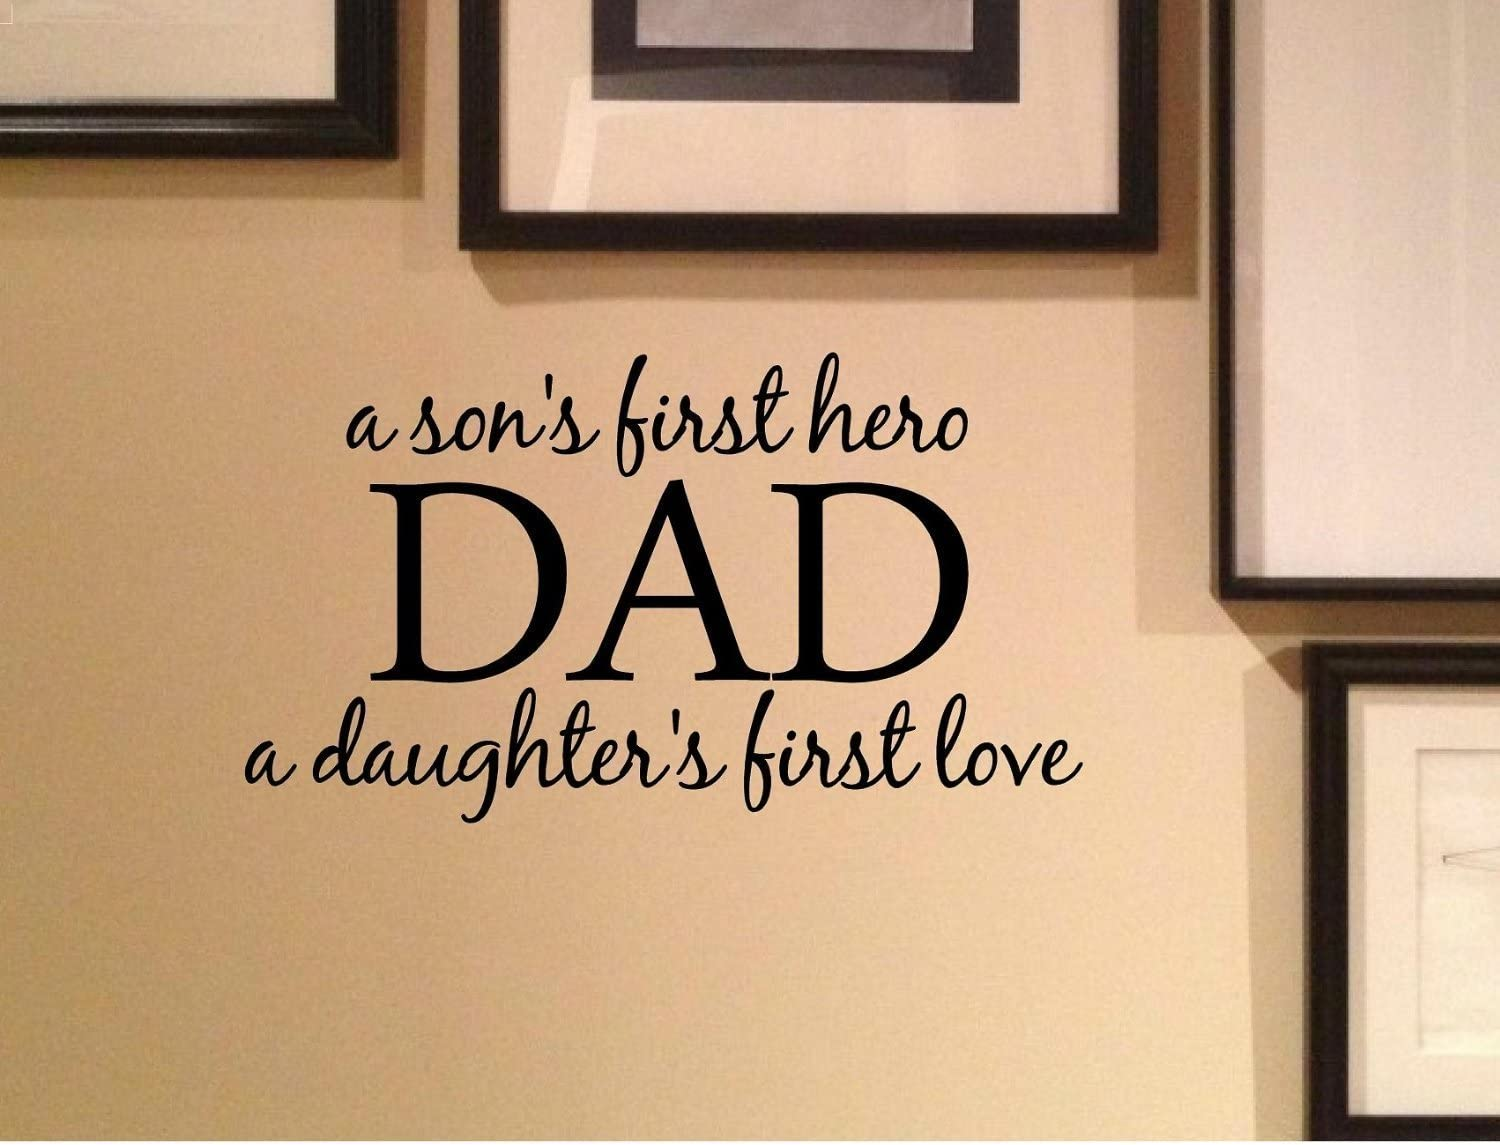 Amazon Com A Son S First Hero Dad A Daughter S First Love Vinyl Wall Art Inspirational Quotes And Saying Home Decor Decal Sticker Home Kitchen